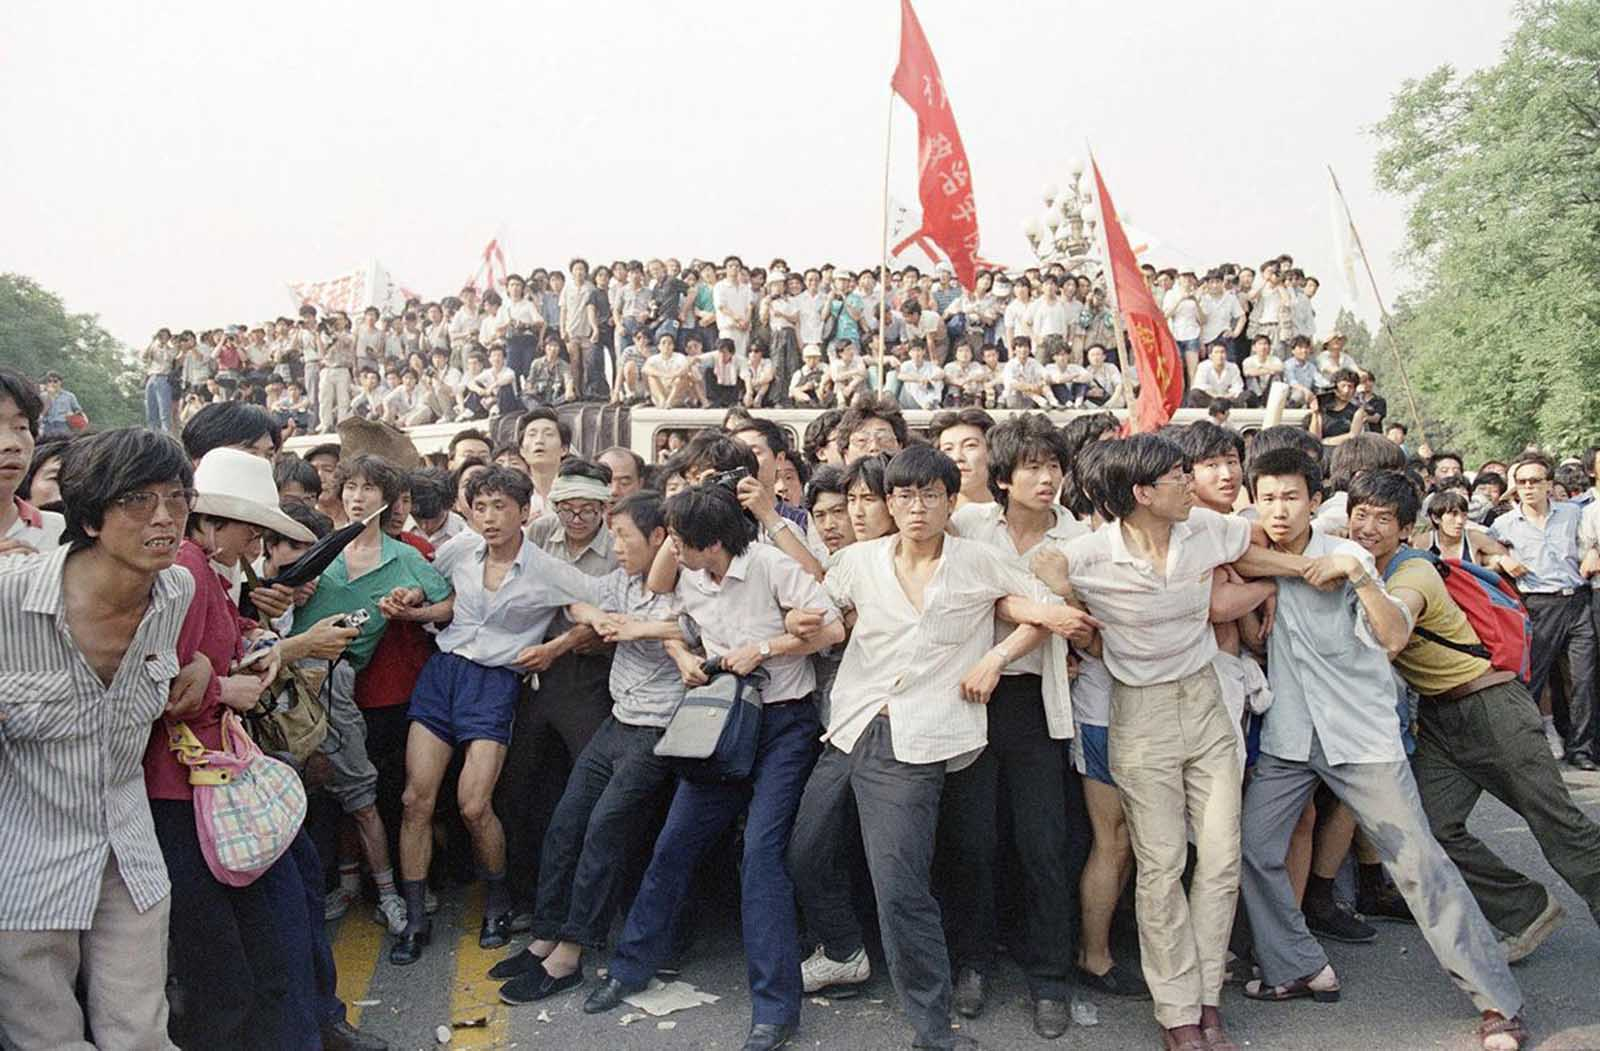 Pro-democracy protesters link arms to hold back angry crowds, preventing them from chasing a retreating group of soldiers near the Great Hall of the People, on June 3, 1989 in Beijing. Protesters were angered by an earlier attack upon students and citizens using tear gas and truncheons. People in the background stand atop buses used as a roadblock.